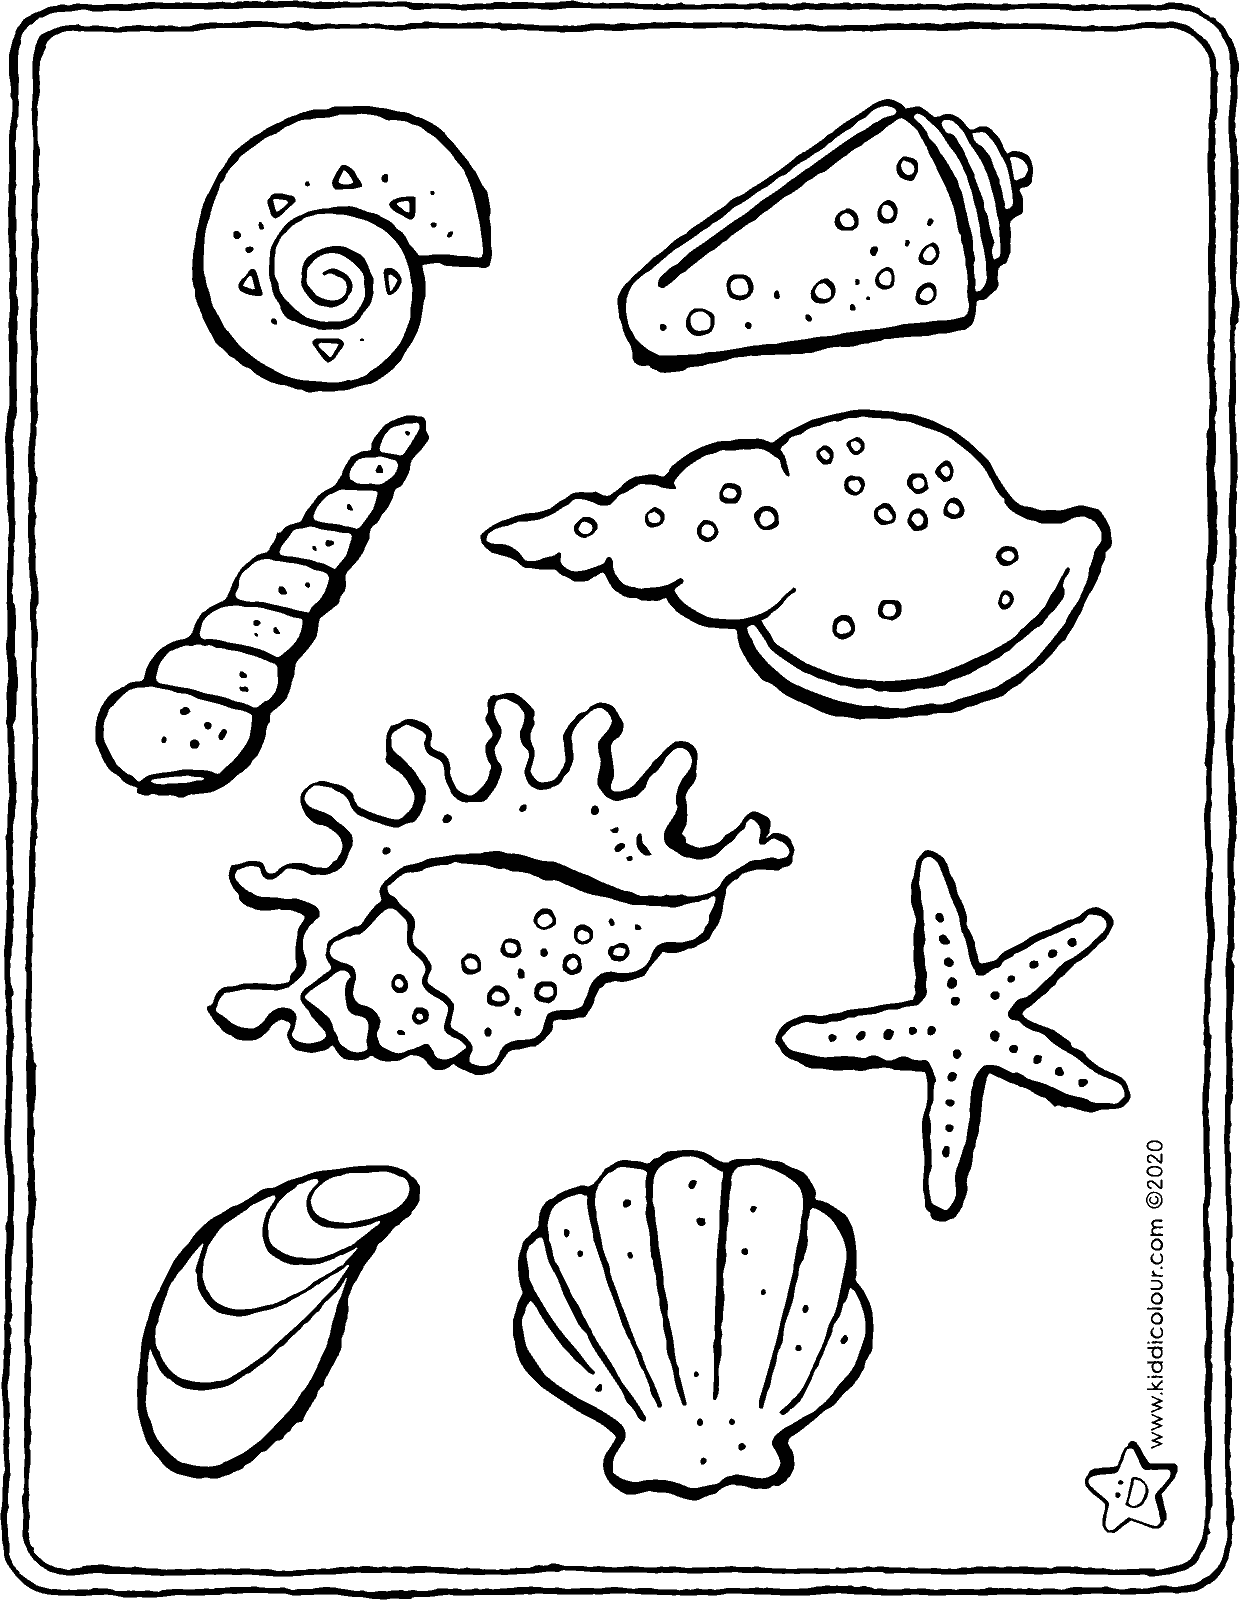 shells colouring page drawing picture 01V